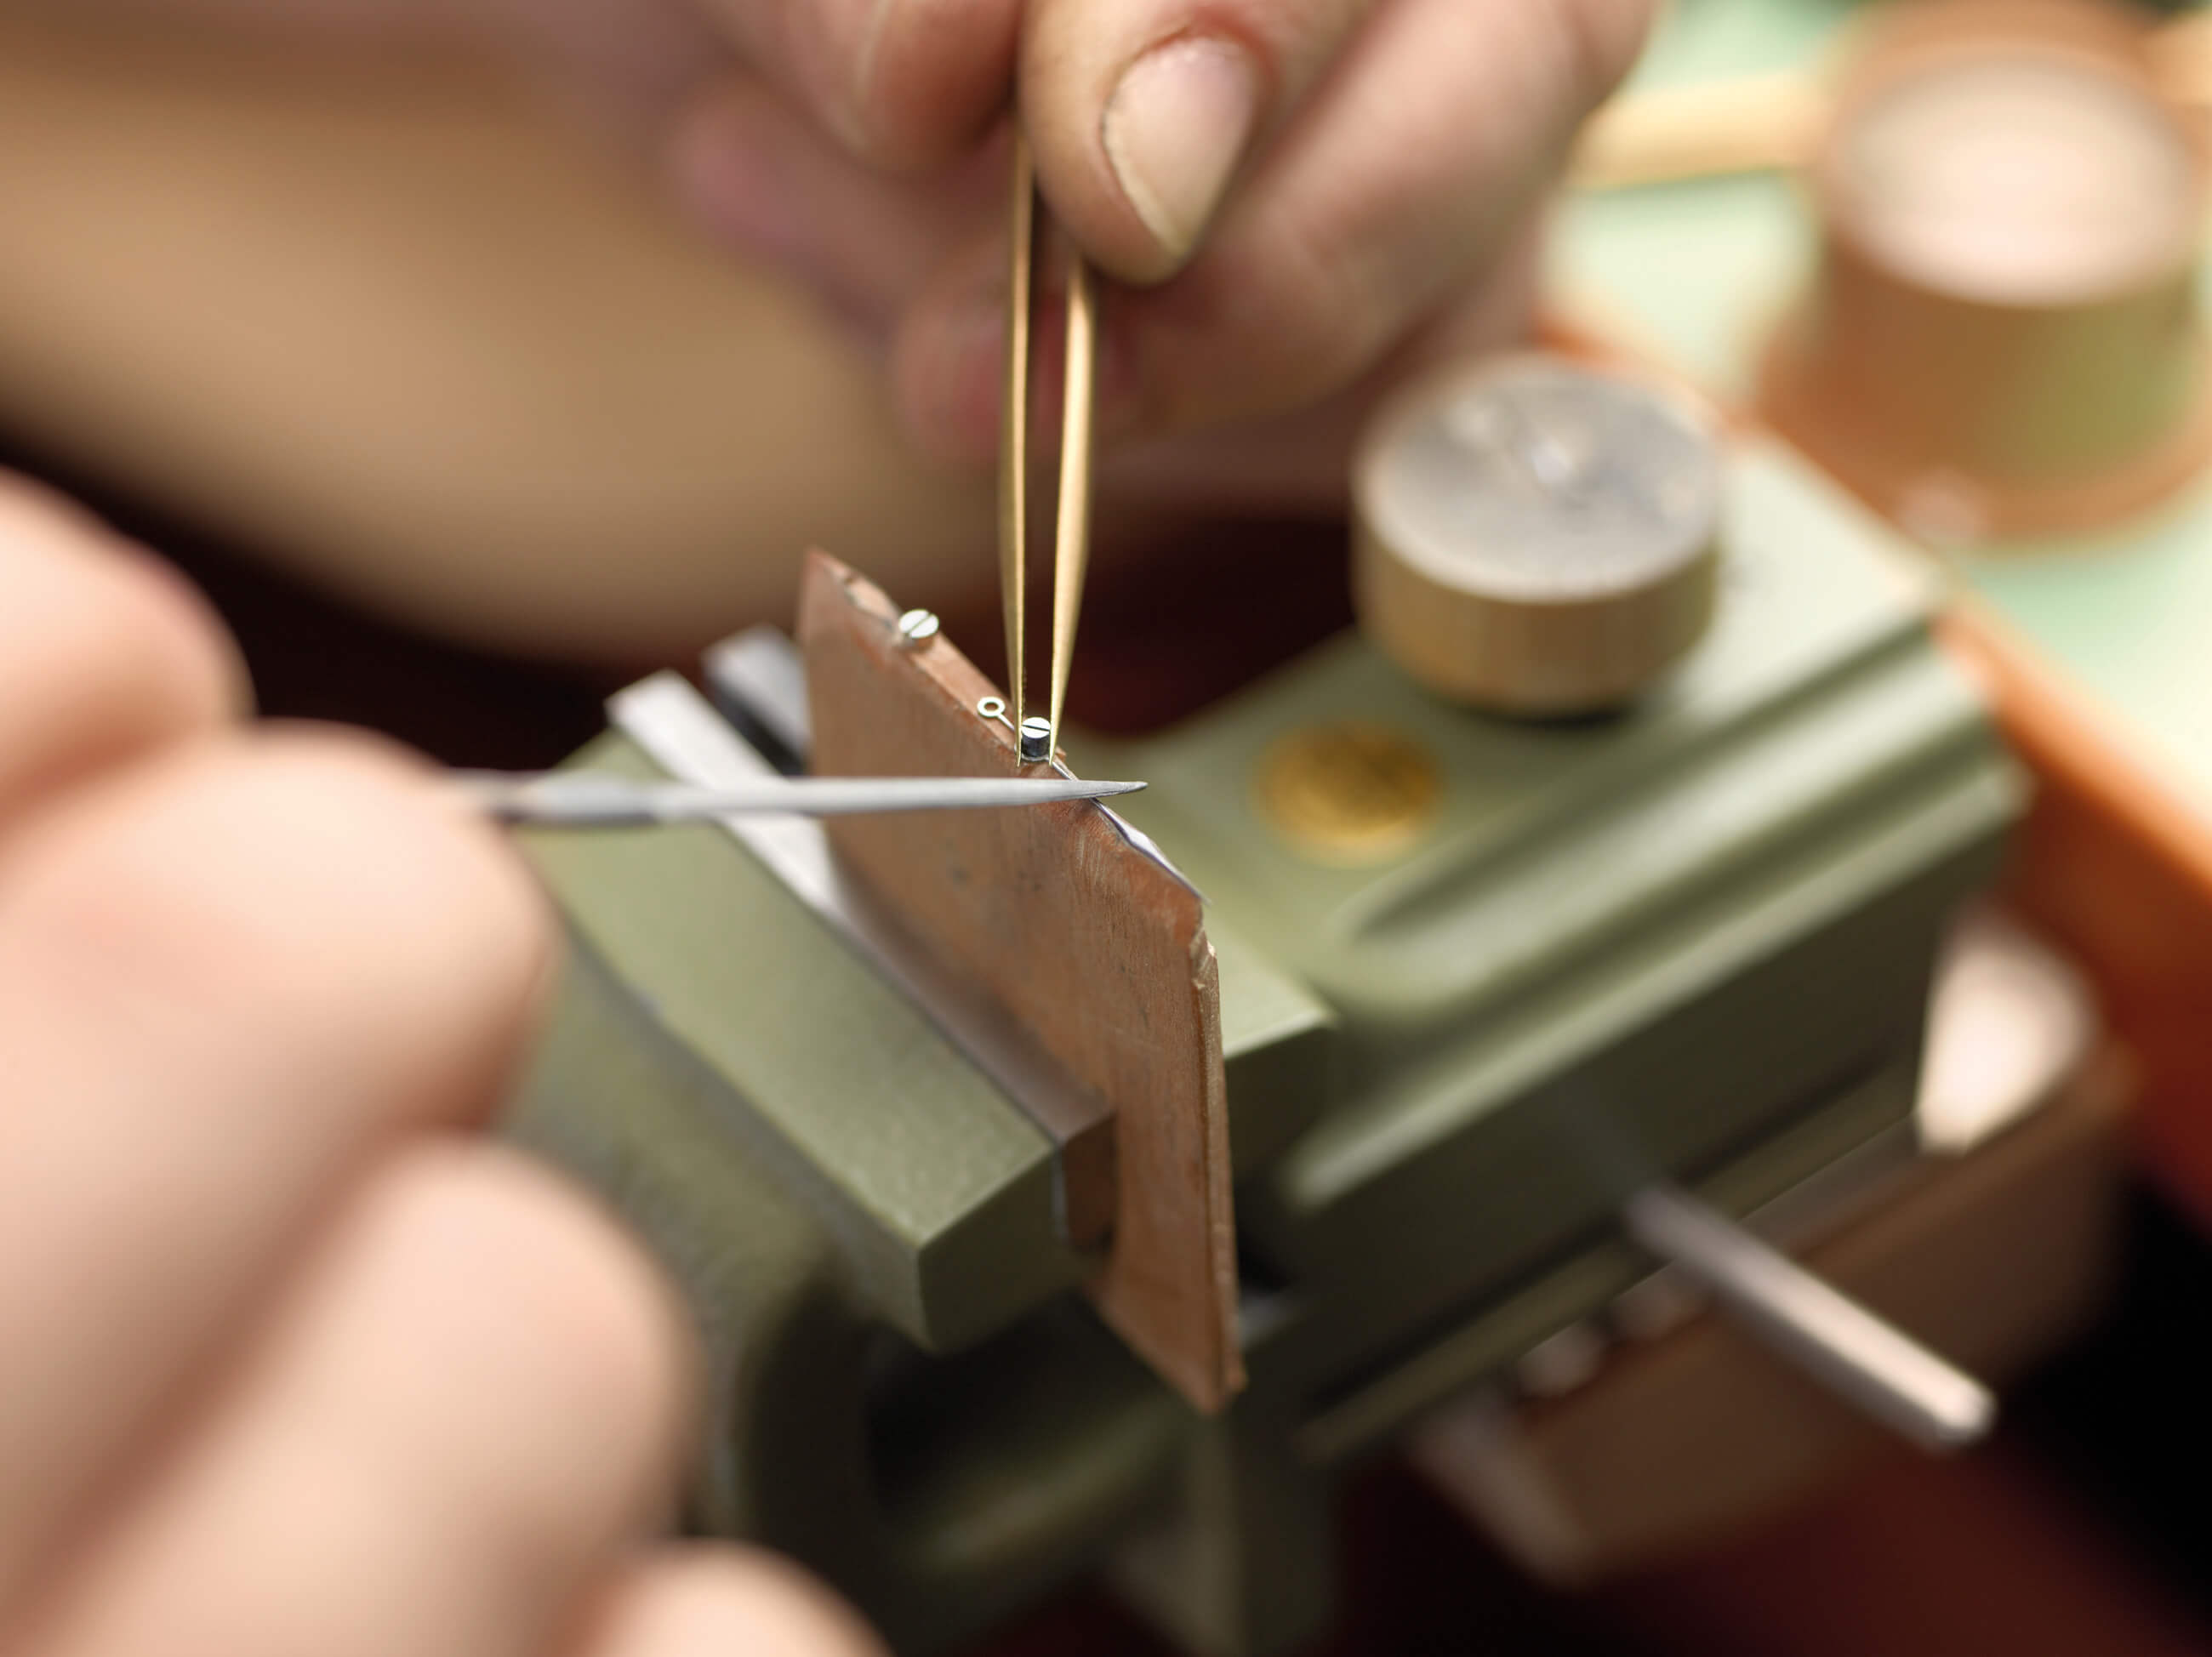 Moritz Grossmann making watch hands